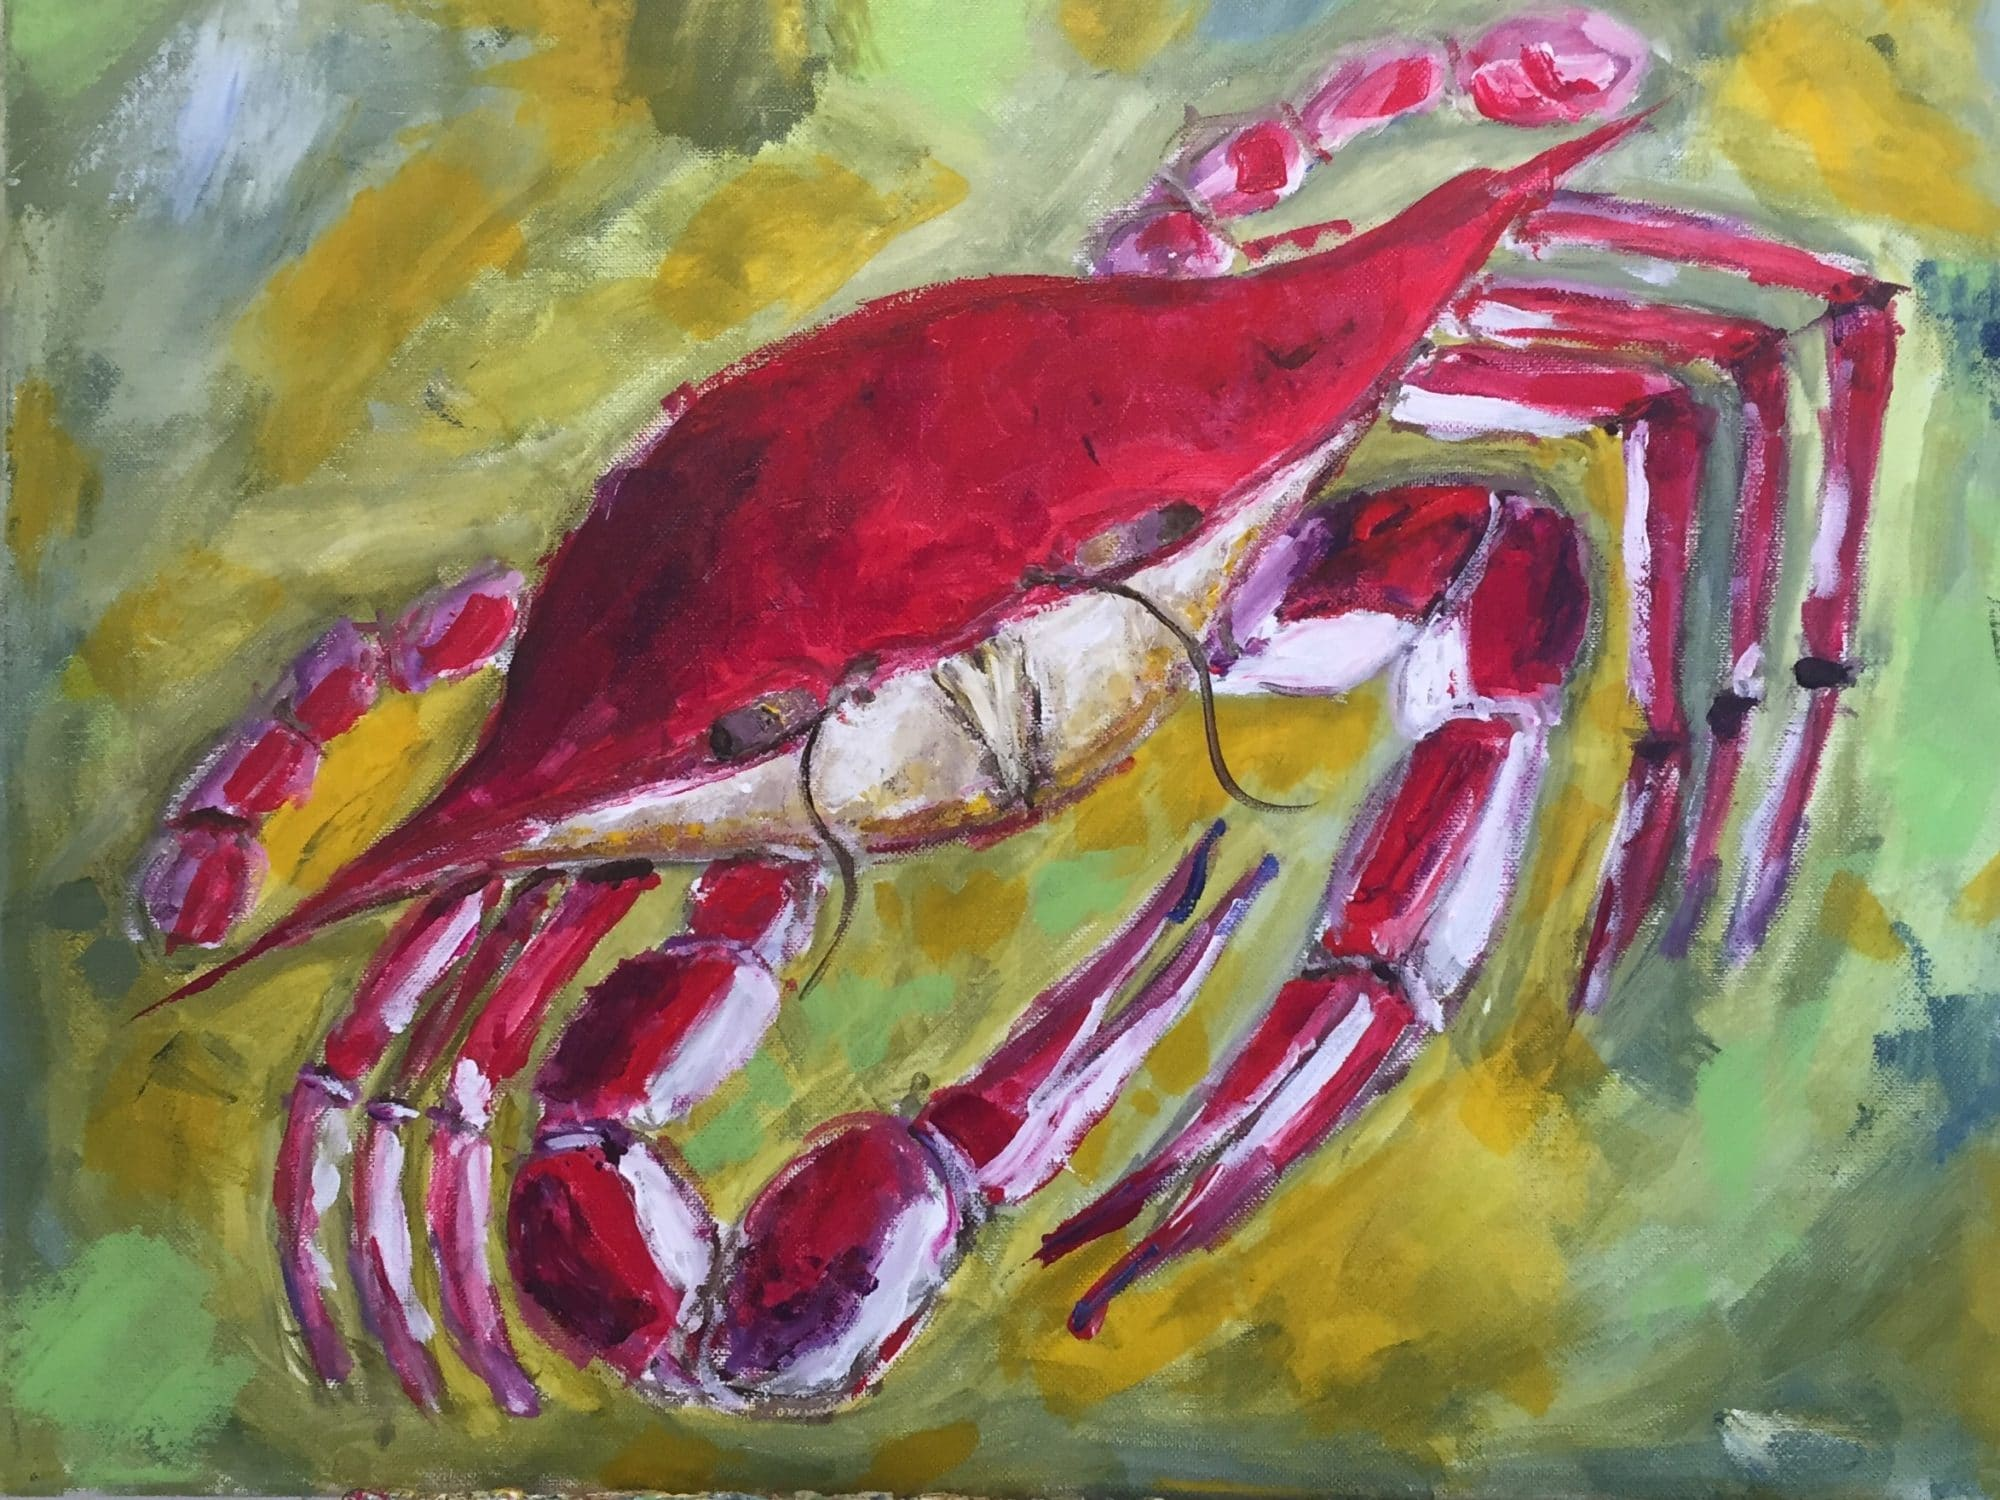 painting of a crab